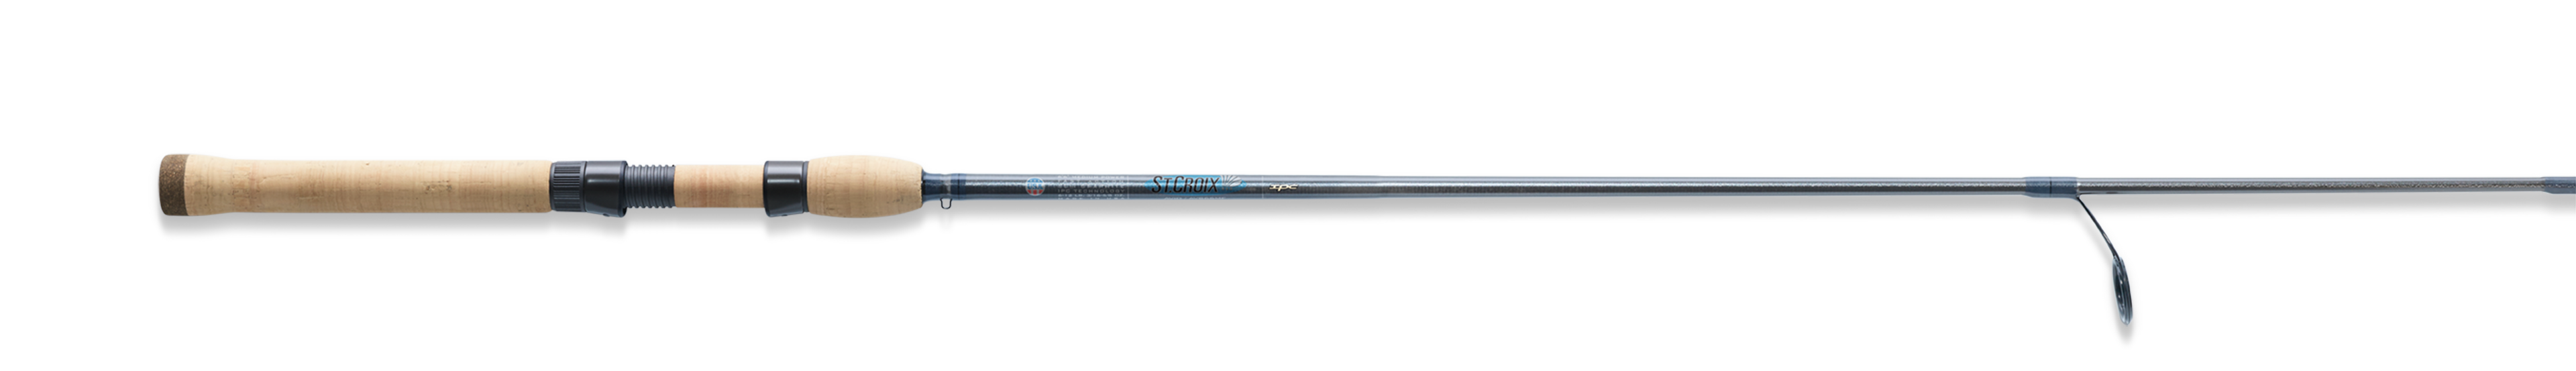 AVID SERIES® SPINNING RODS